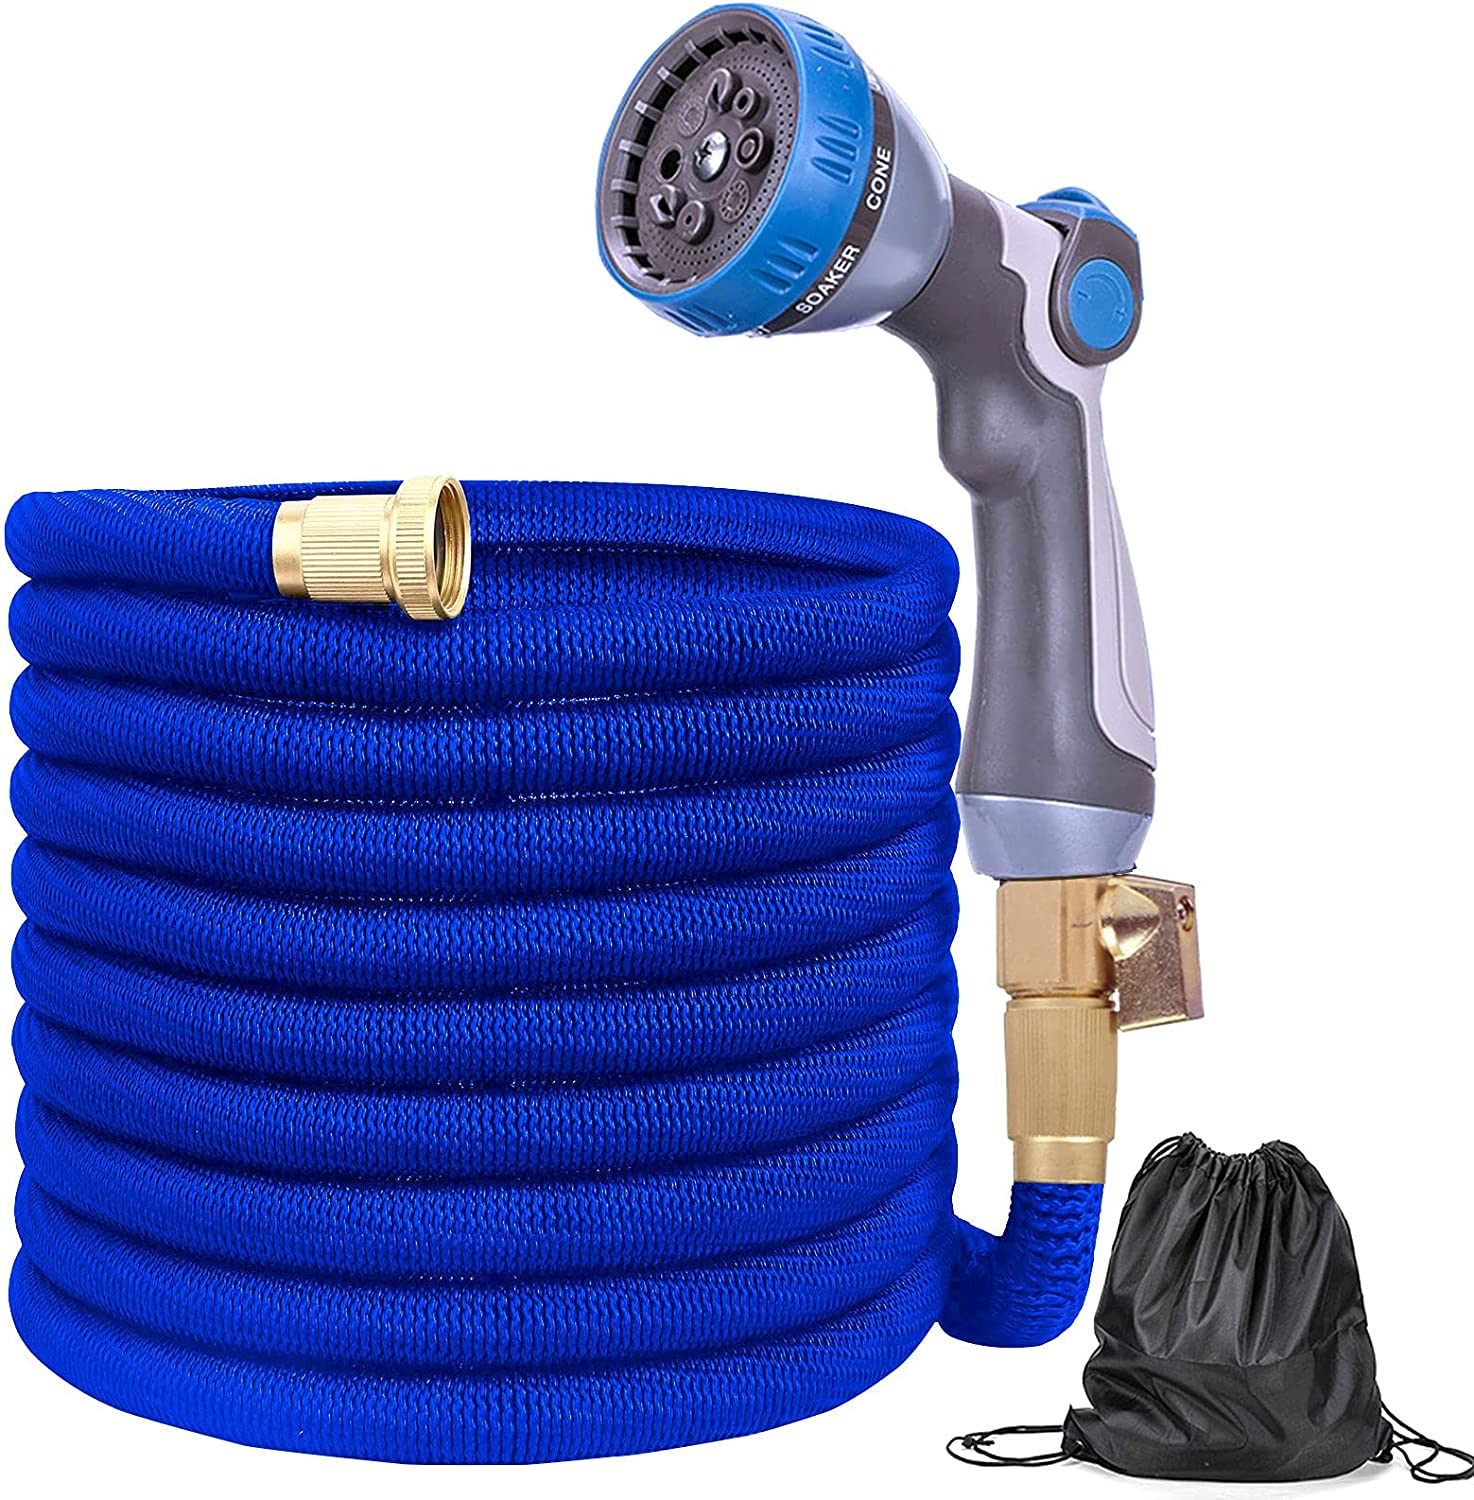 Flexible Garden Hose 75FT Expandable Water 3 4 Inch Max 47% OFF Manufacturer direct delivery S with